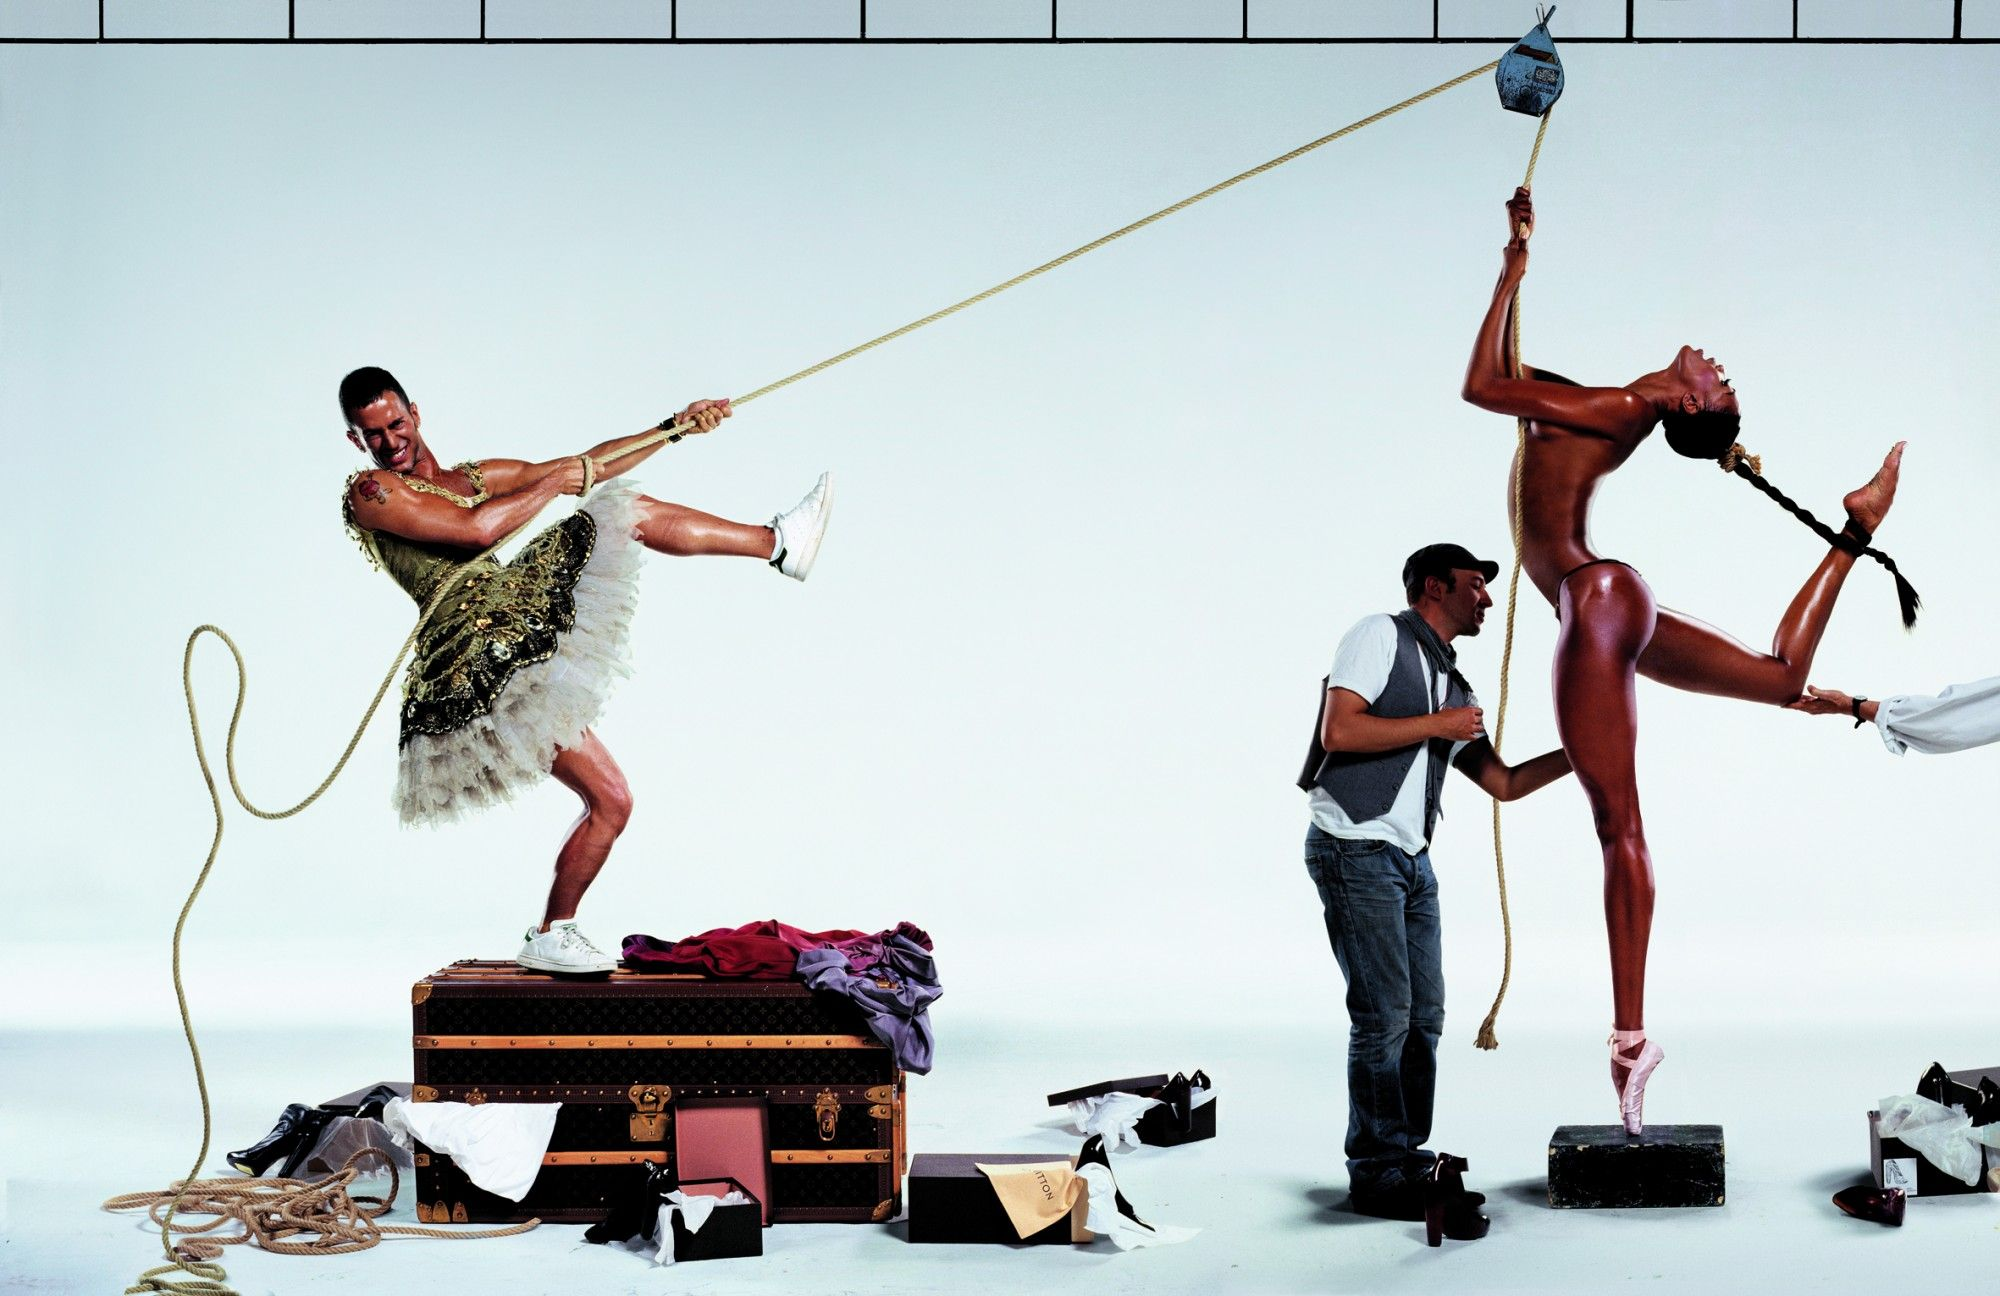 Marc Jacobs and Naomi Campbell photographed by Jean-Paul Goude for Harper's Bazaar: 'Marc on Top', September 2007.